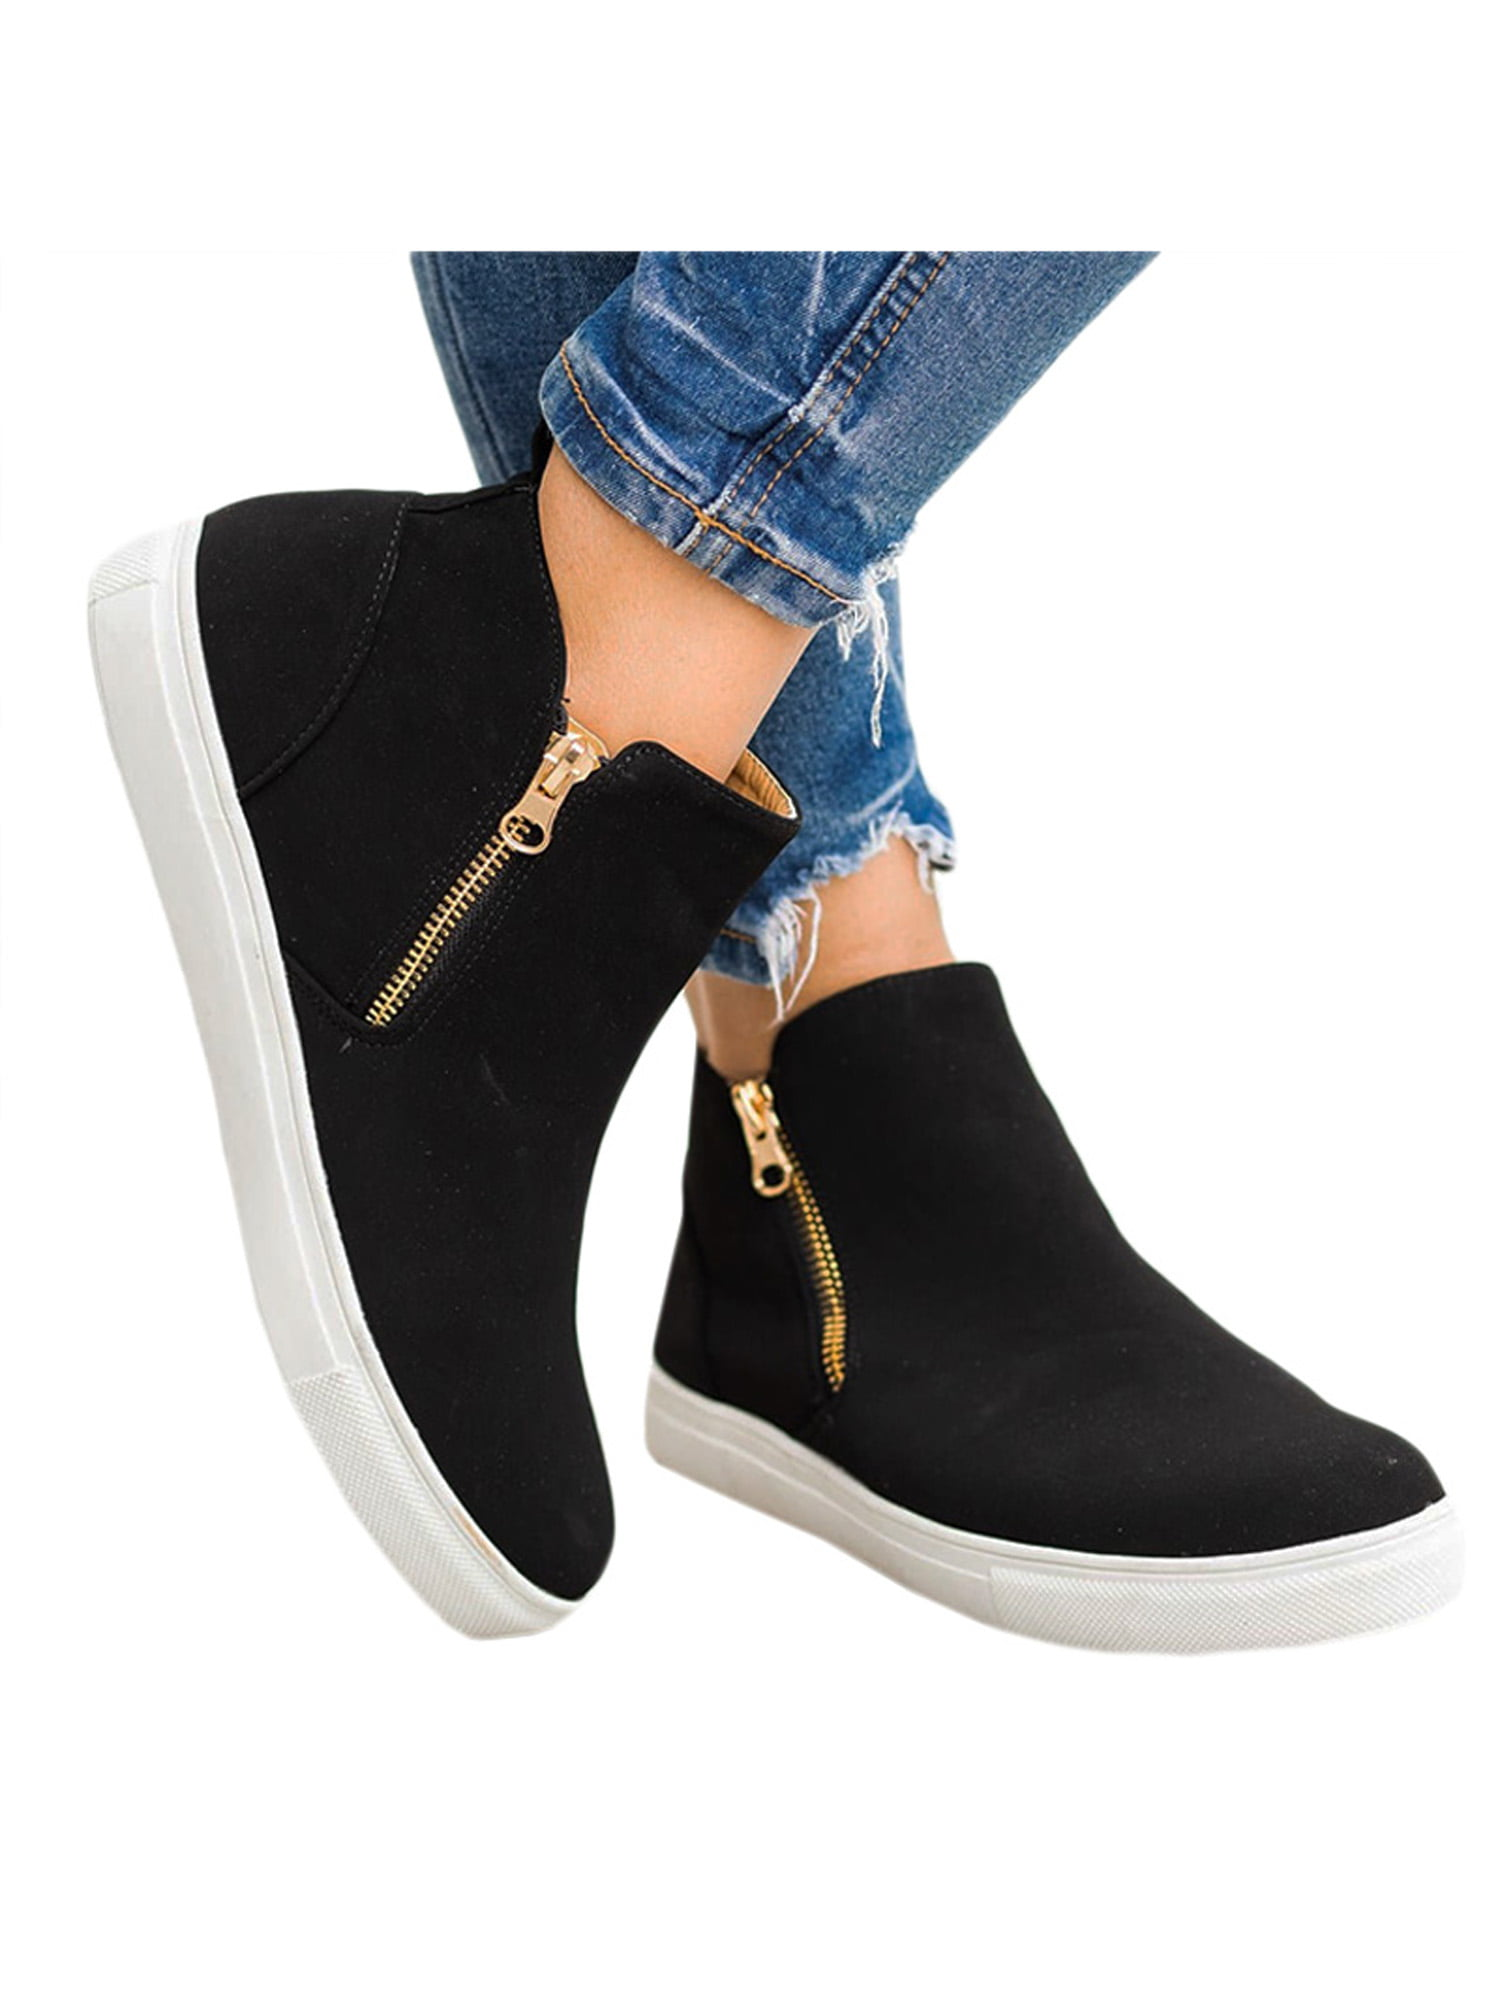 Zipper Casual Flats Slip On Ankle Boots